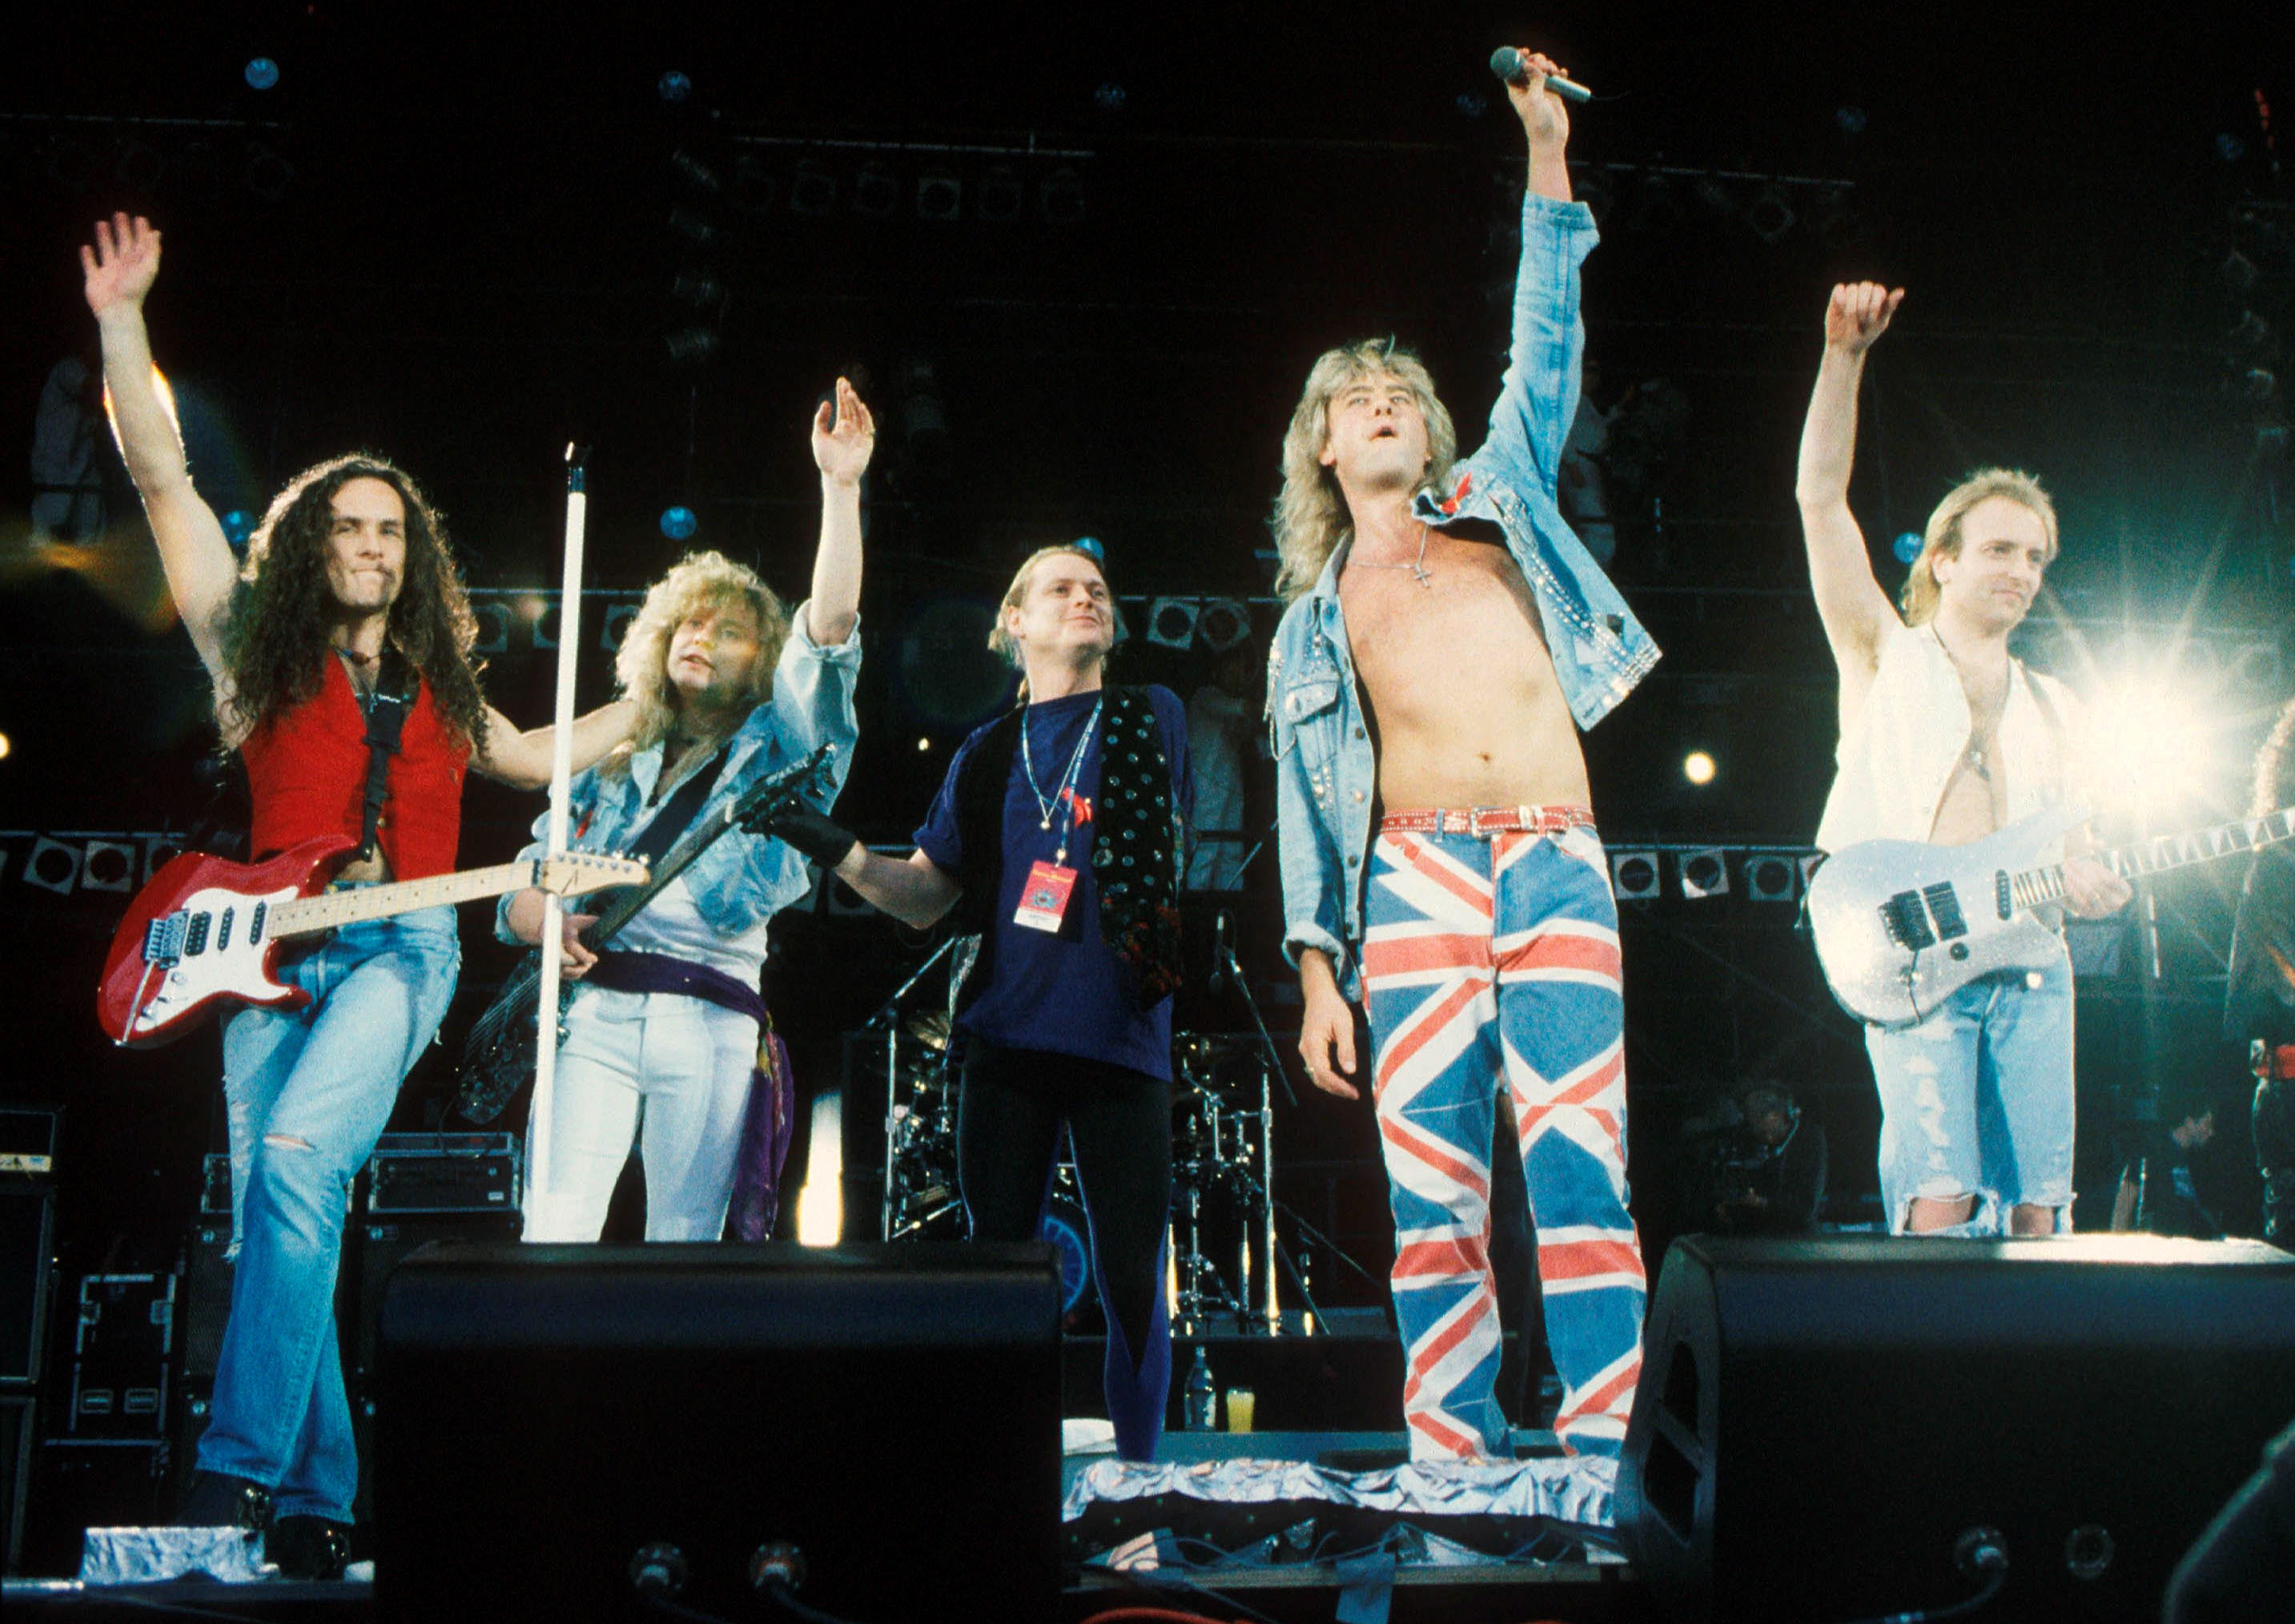 Def Leppard: To Hell & Back